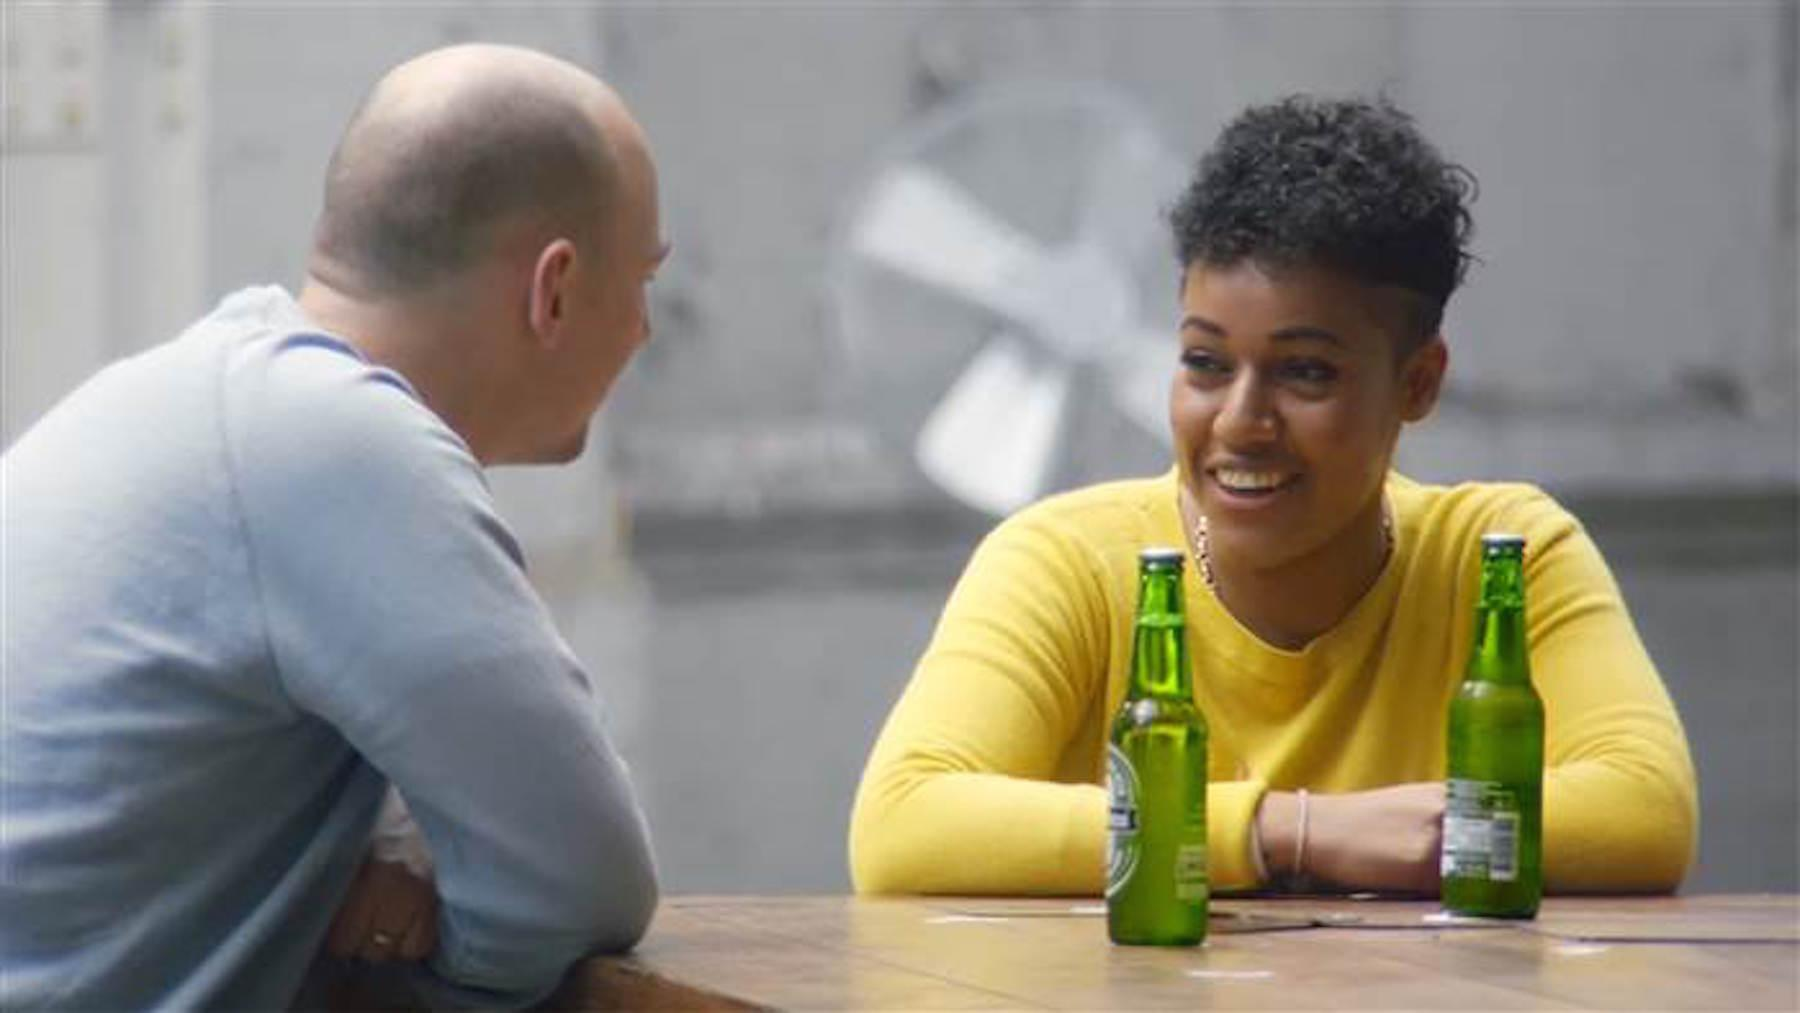 heineken-commercial-today-170426-tease-02_ee58b6818d23a9616196bc33020237dc.today-inline-large-1493314868059.jpg